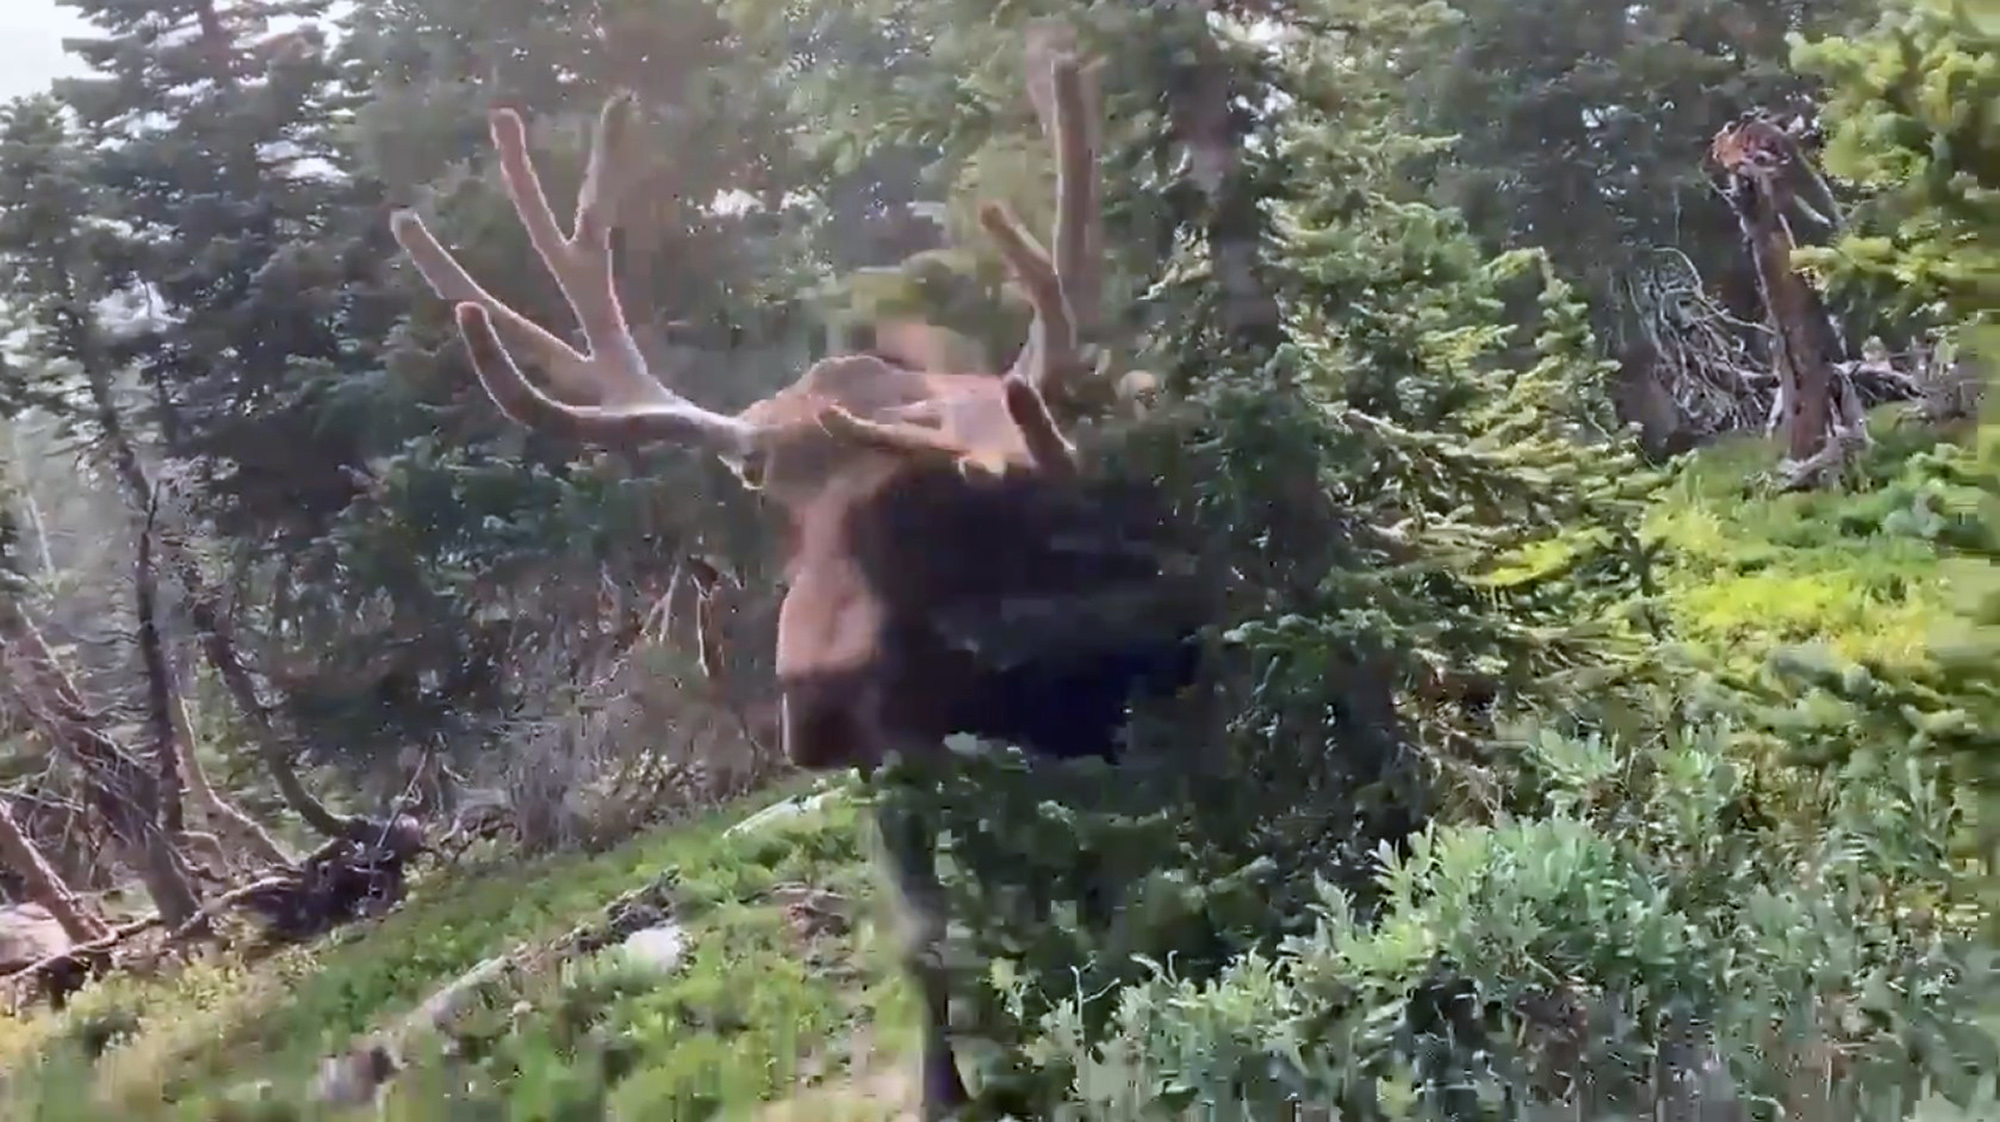 VIDEO: Highly Charged: Furious Moose Attacks Nature Lover